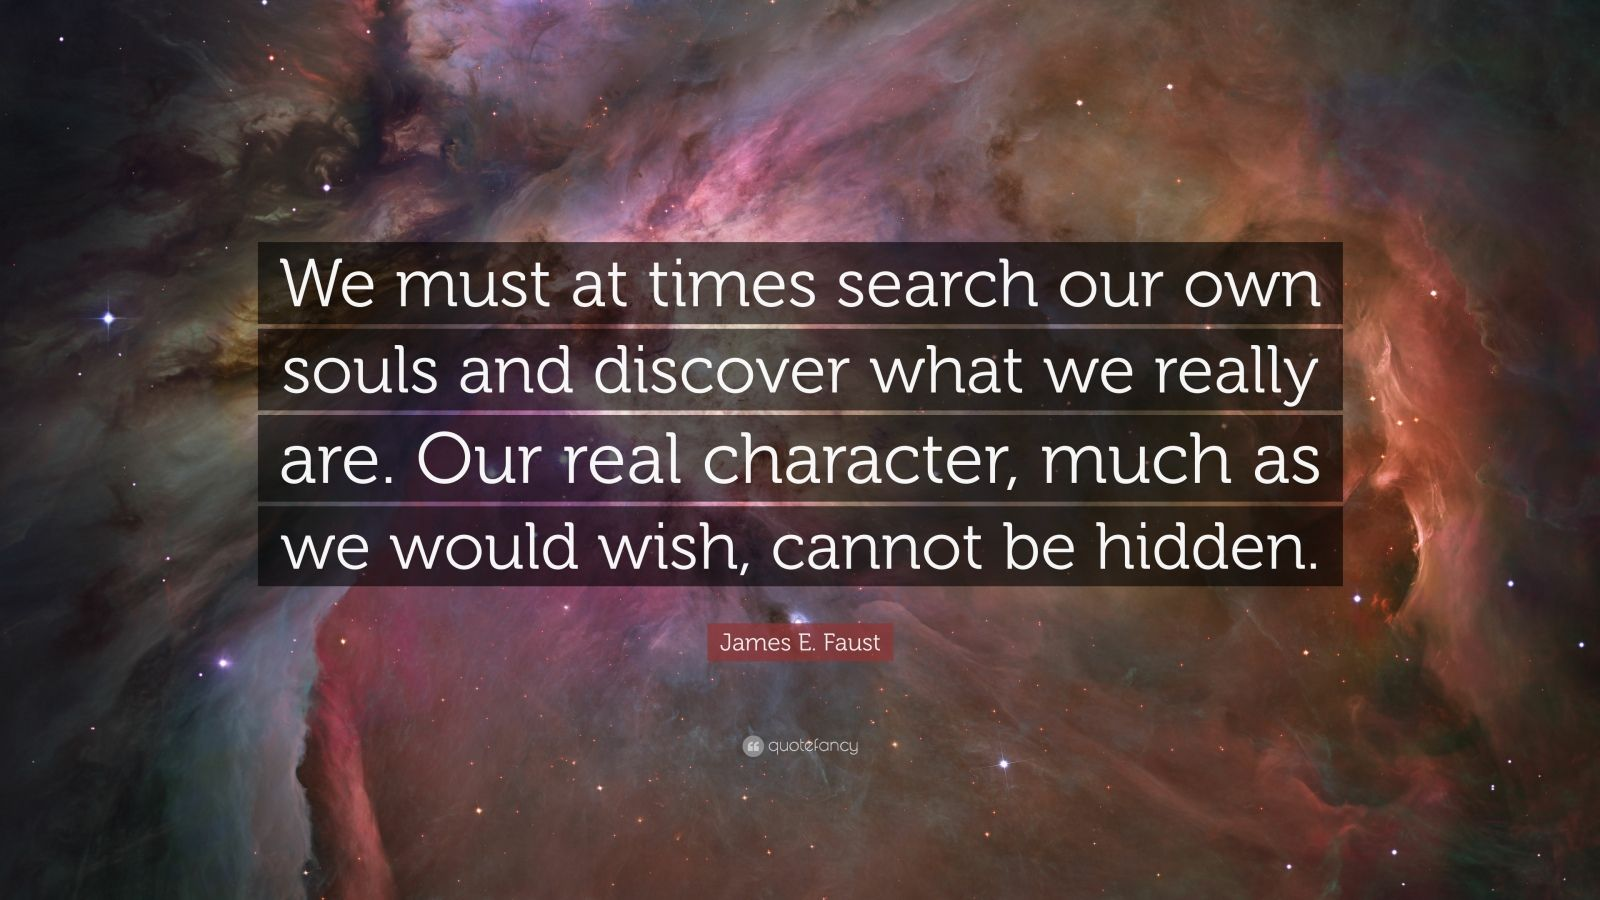 """James E. Faust Quote: """"We must at times search our own souls and discover what we really are. Our real character, much as we would wish, cannot be hidden."""""""